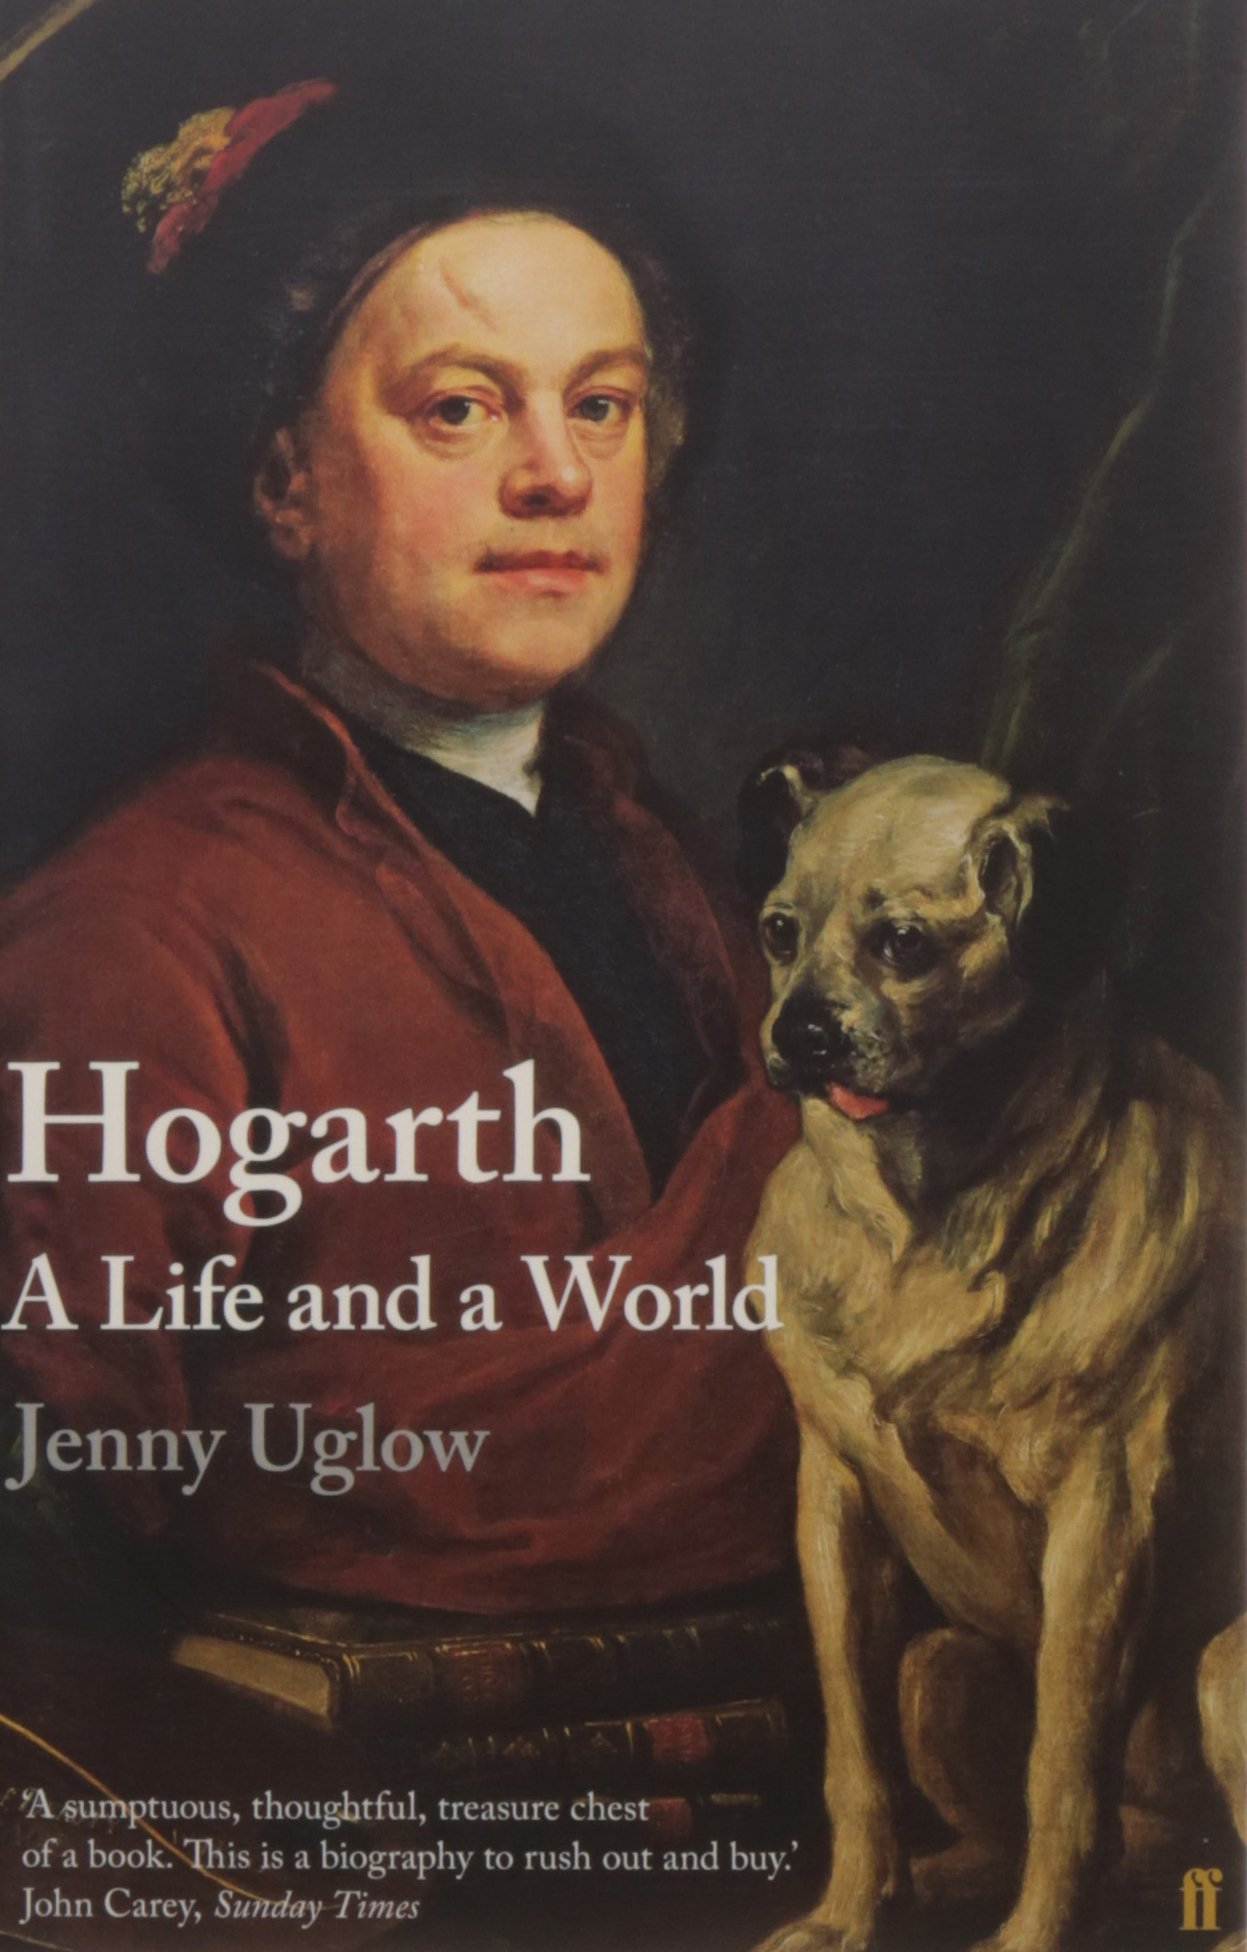 Download image 1700s woman portrait pc android iphone and ipad - William Hogarth A Life And A World Jenny Uglow 9780571193769 Amazon Com Books